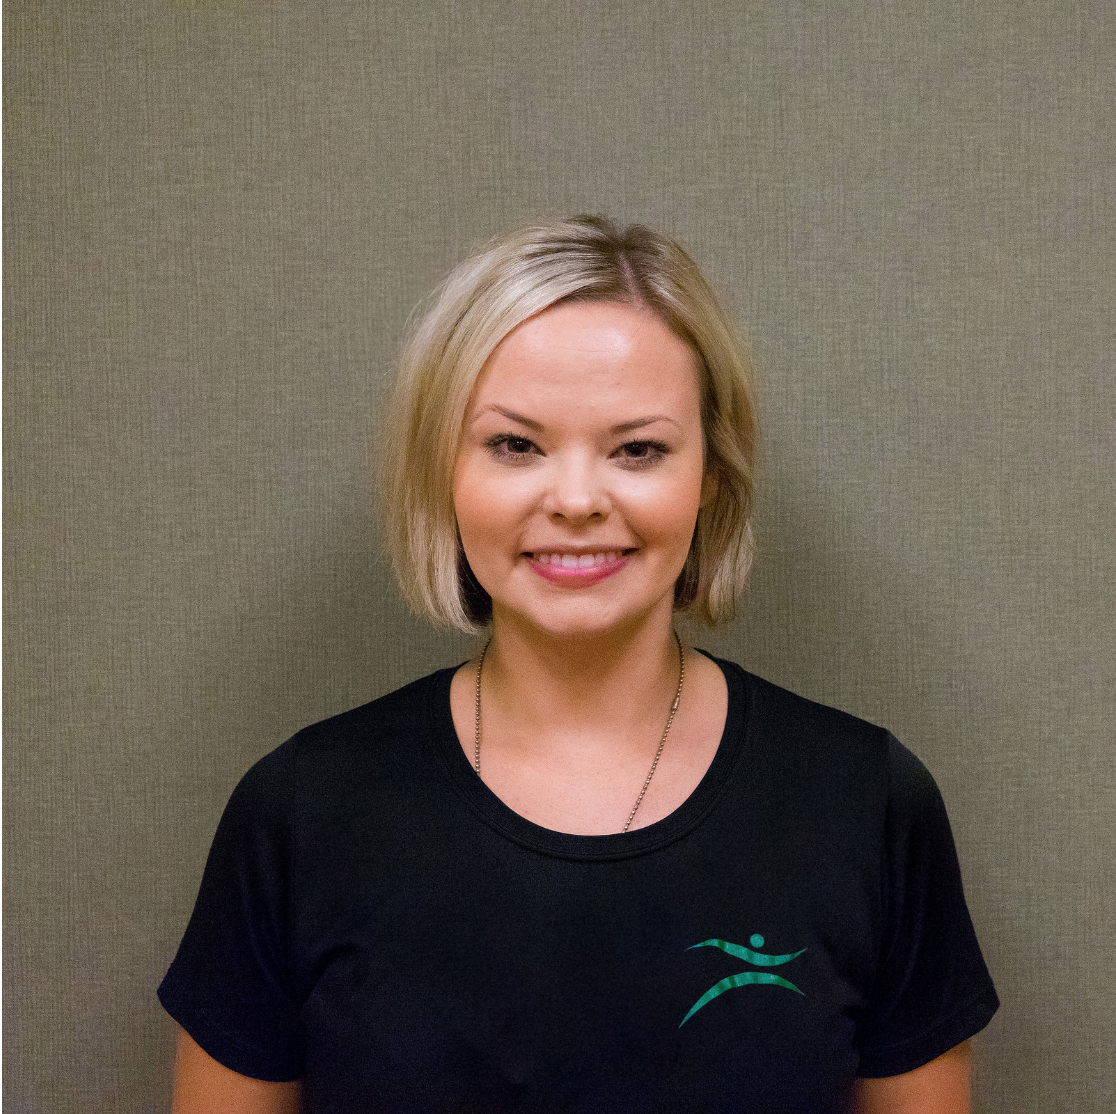 Anna Carlino, Performance Trainer, Administrative Services Manager